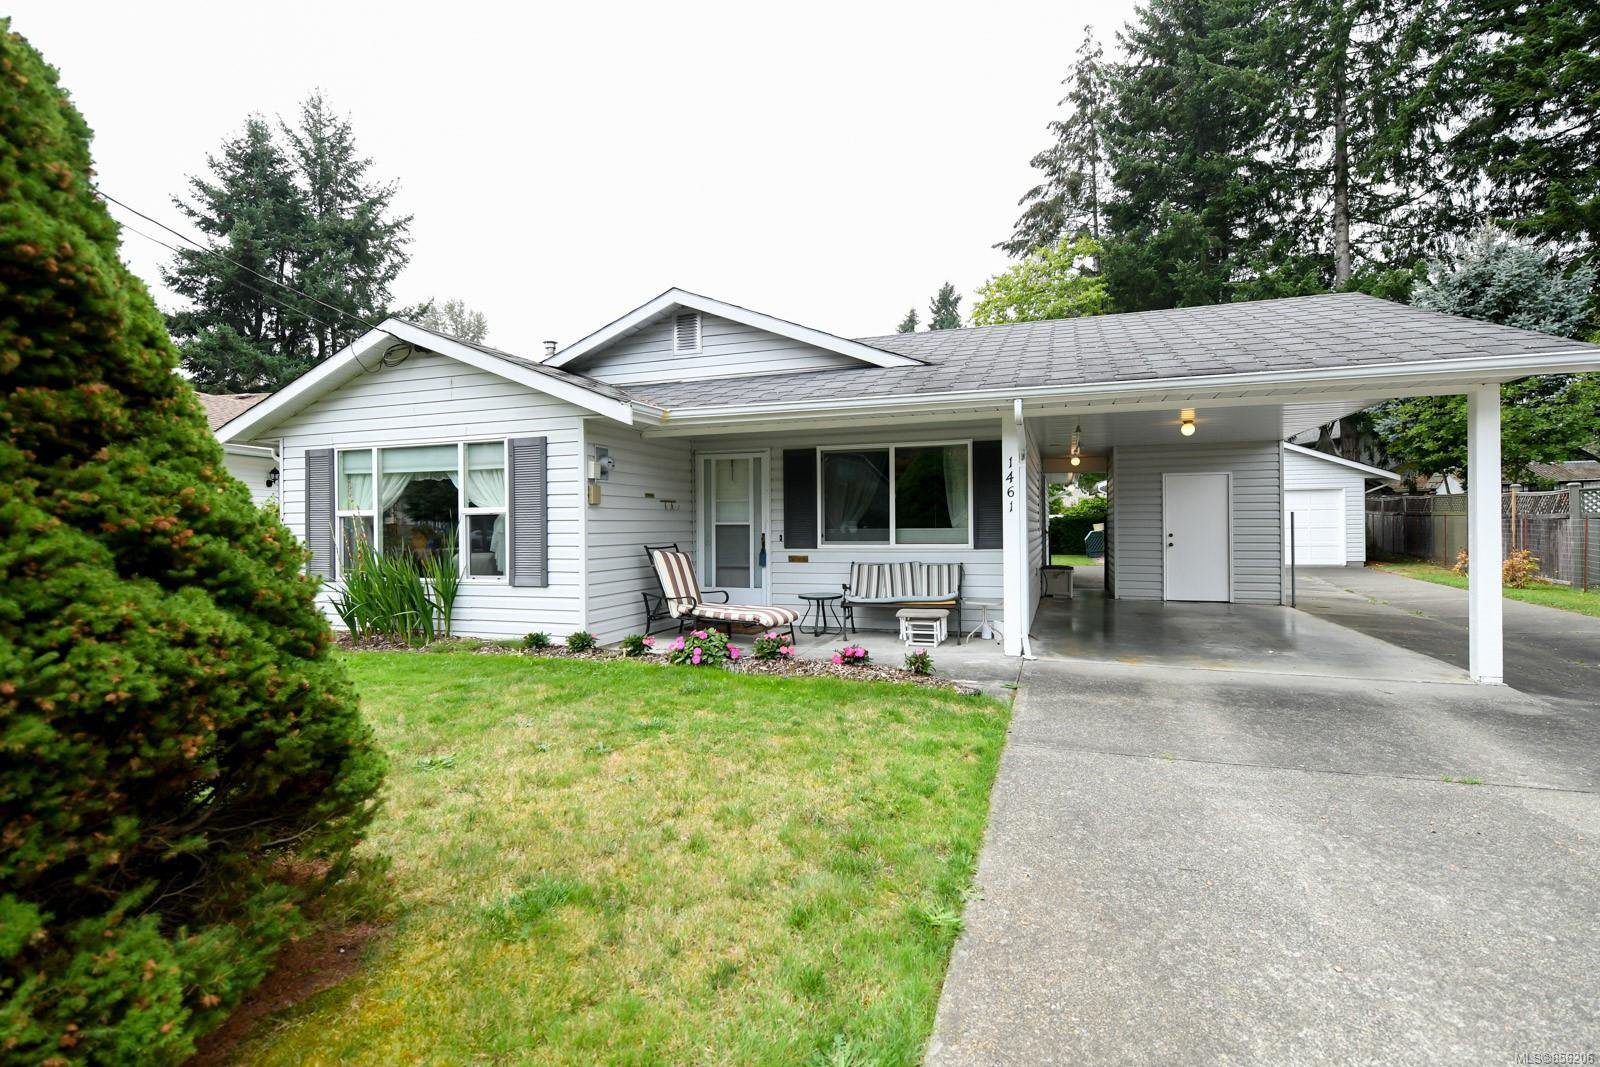 Main Photo: 1461 Embleton Cres in : CV Courtenay City House for sale (Comox Valley)  : MLS®# 856206